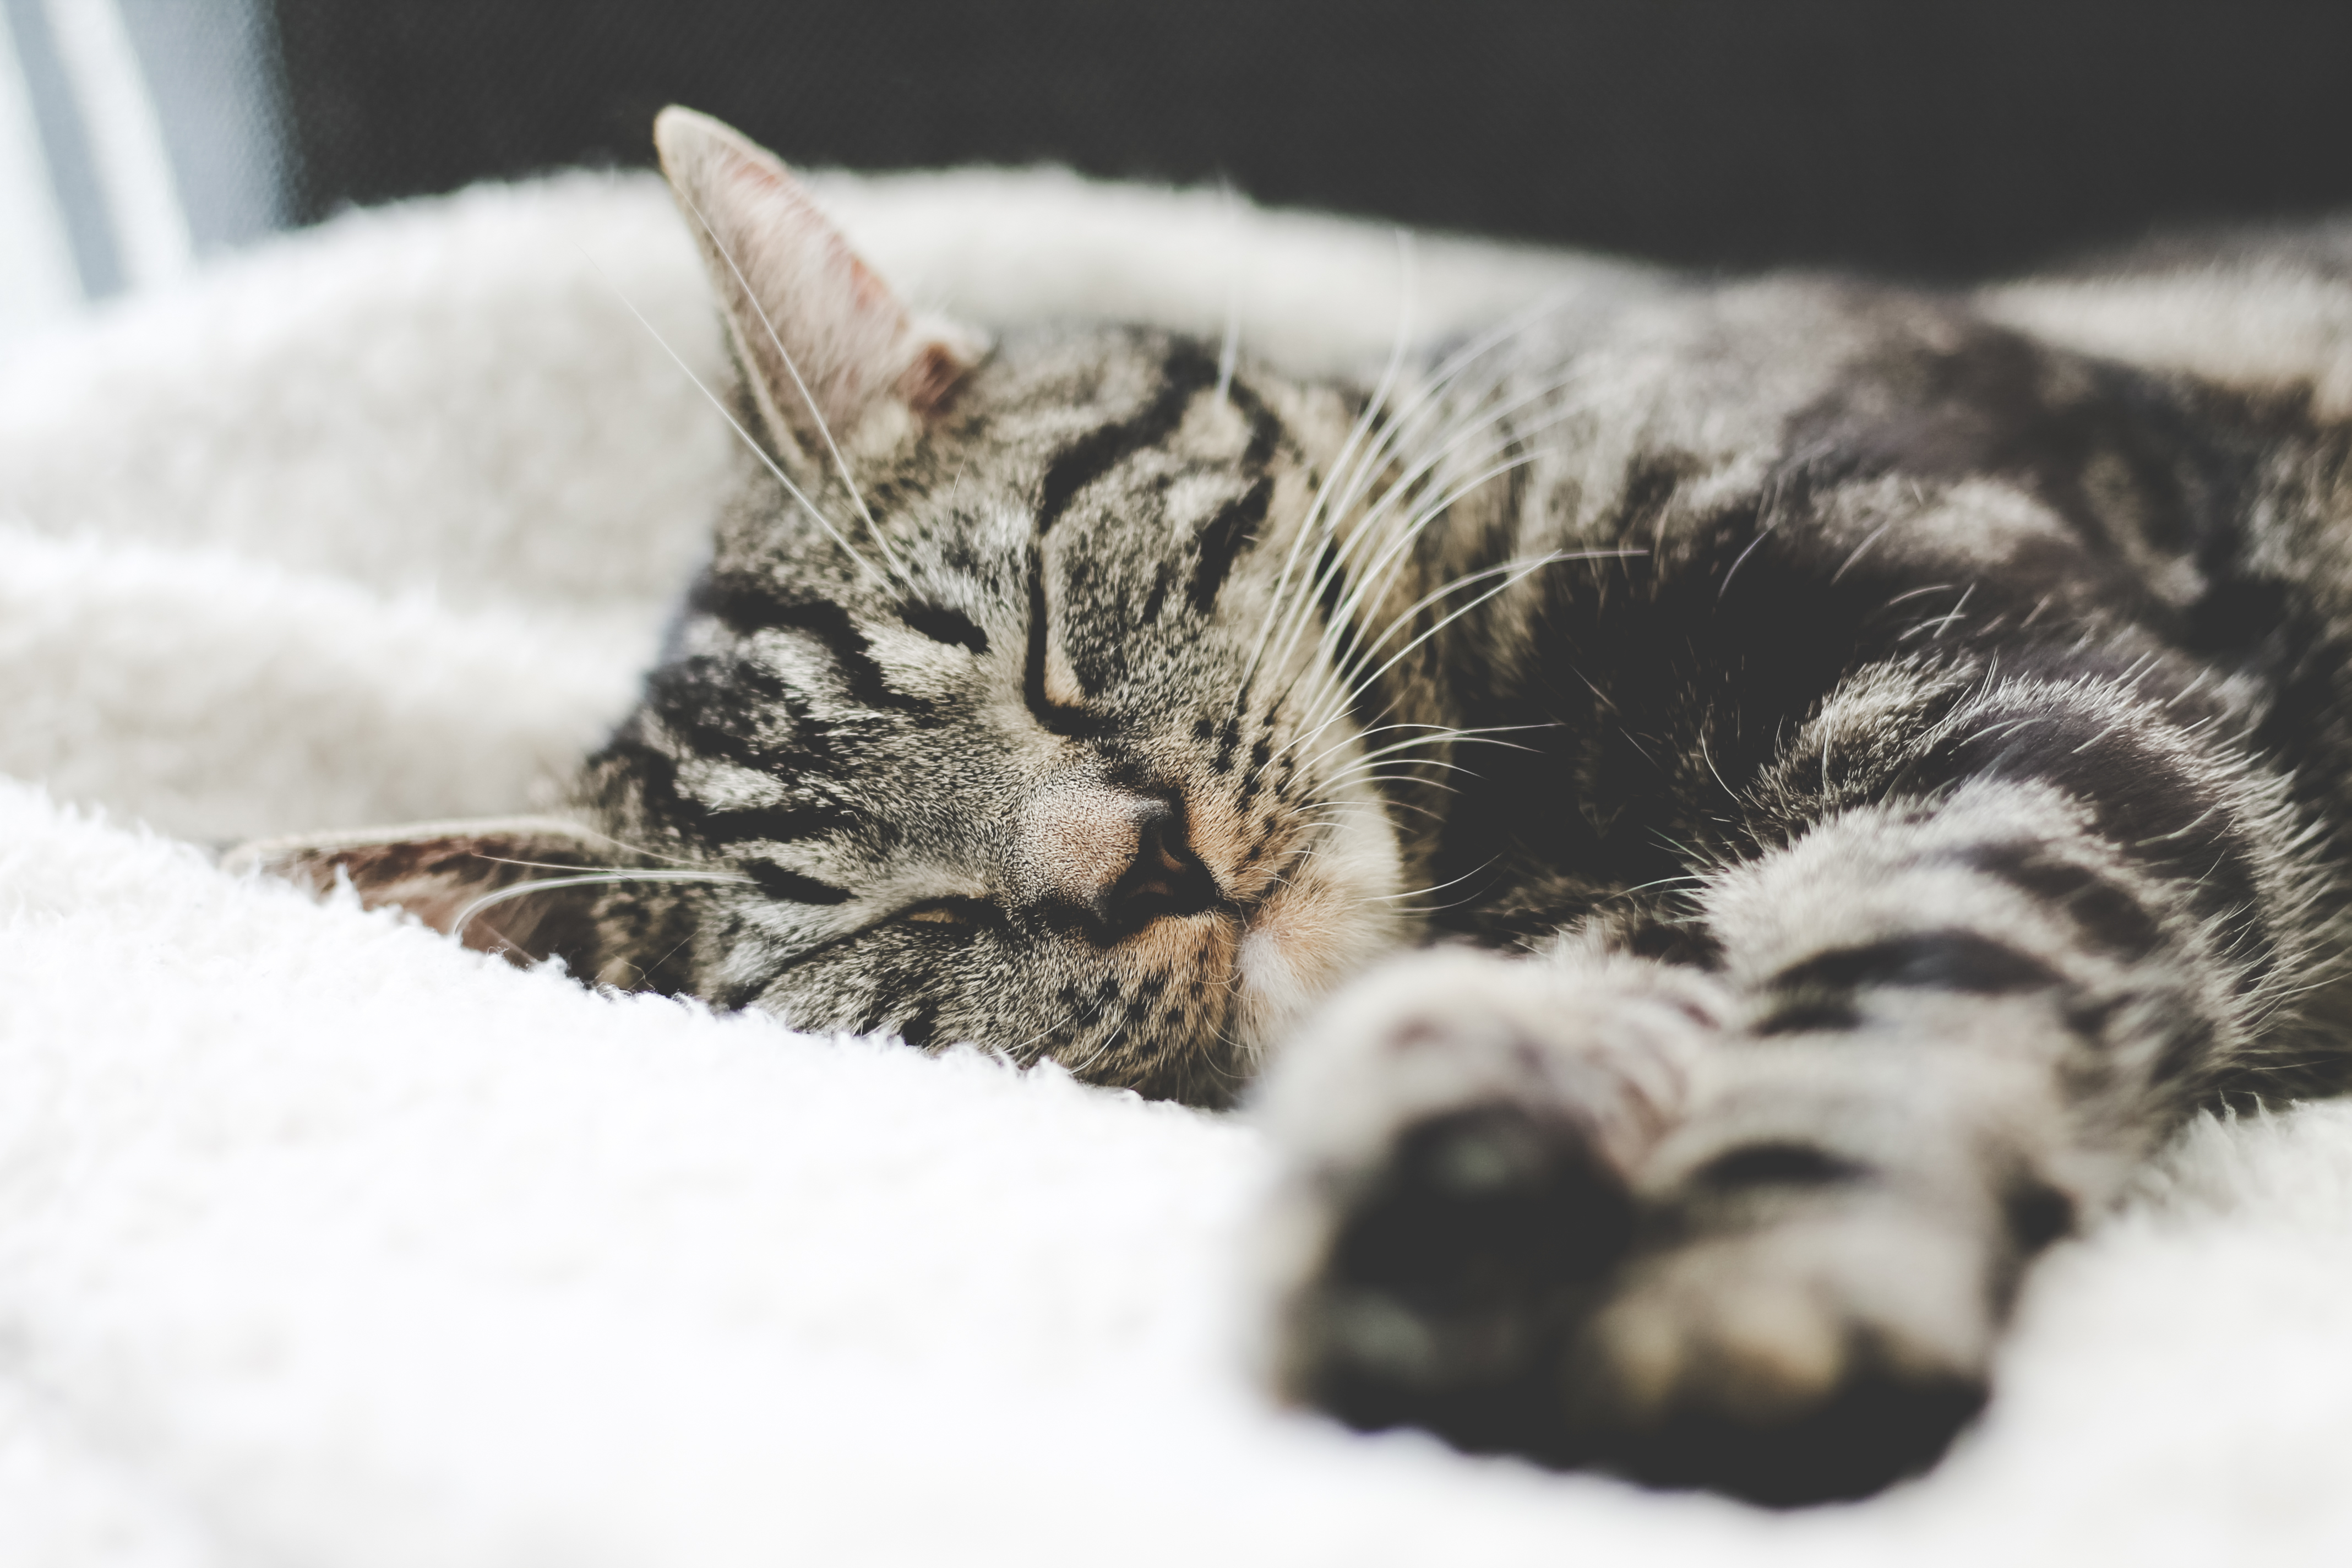 148697 download wallpaper Animals, Cat, Muzzle, Striped, Lies screensavers and pictures for free